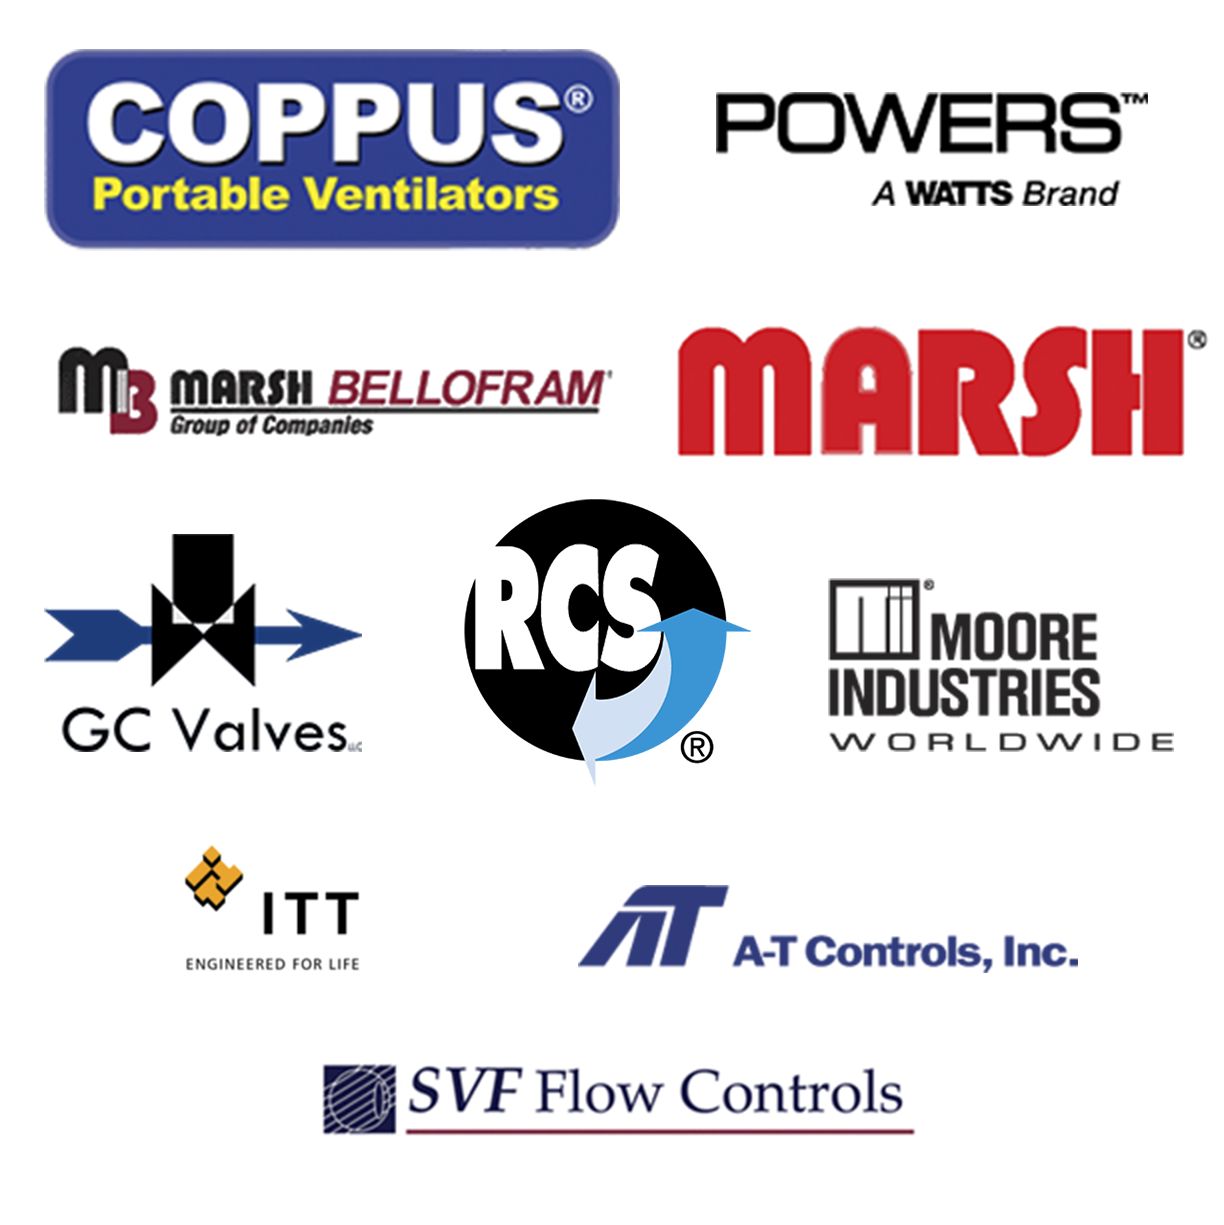 Mountain Controls works with the companies represented by the logos in this image